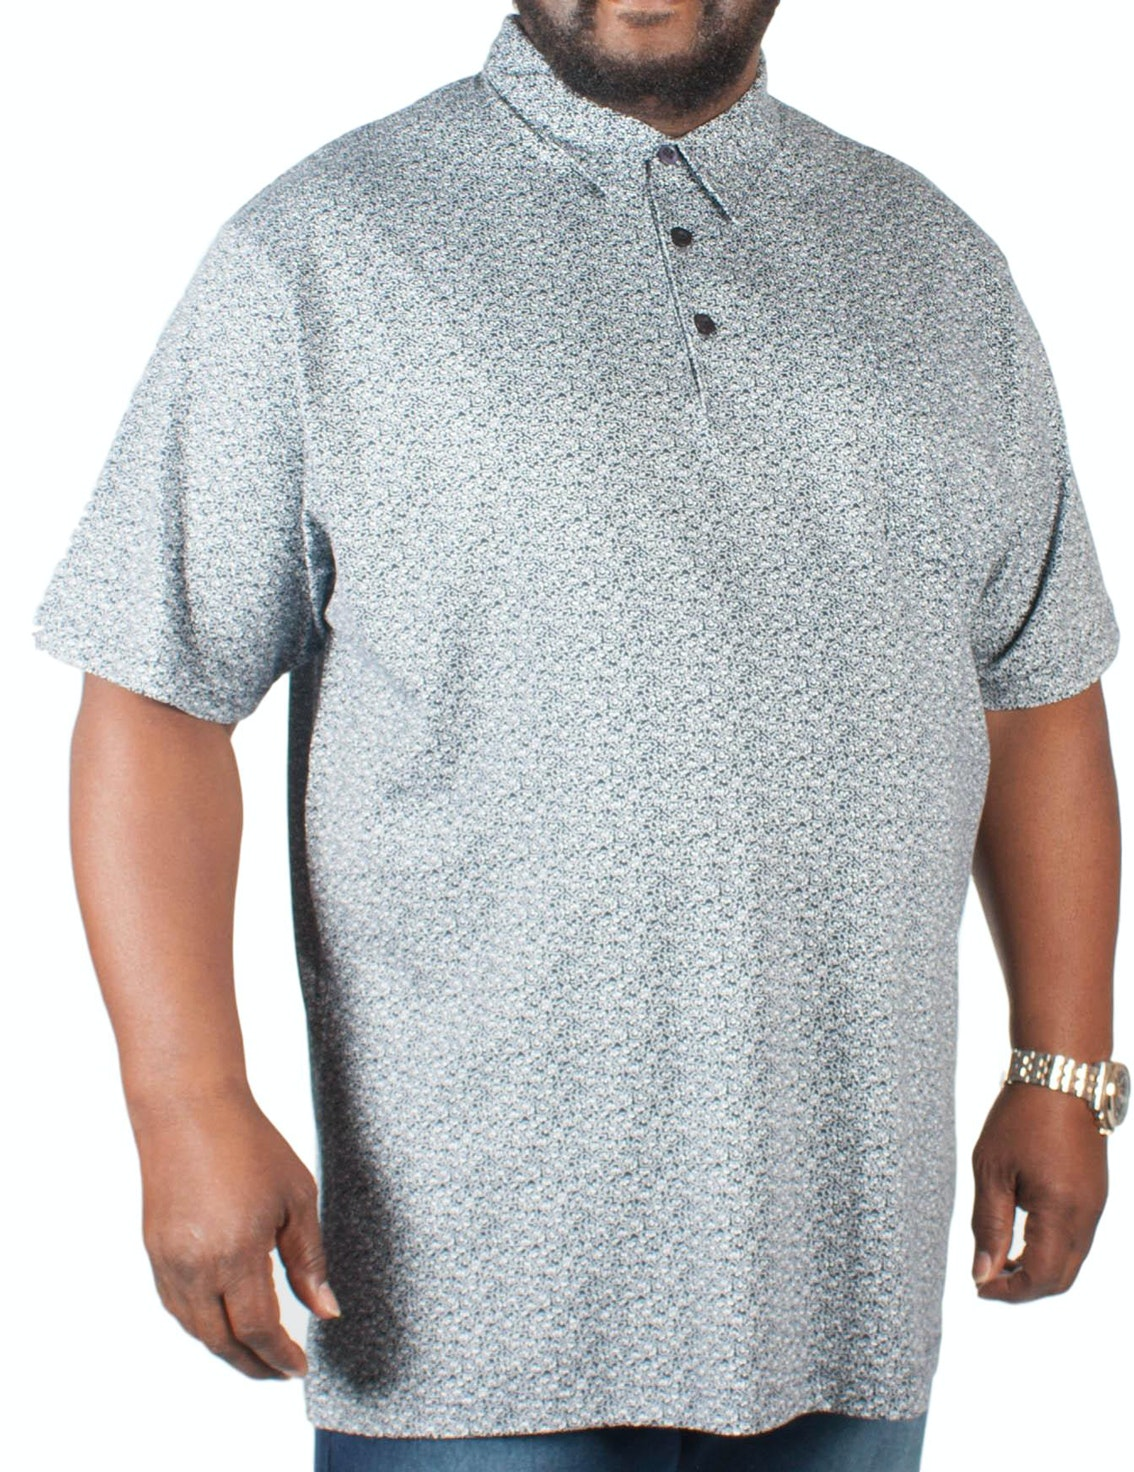 Espionage Speckled Print Polo Shirt